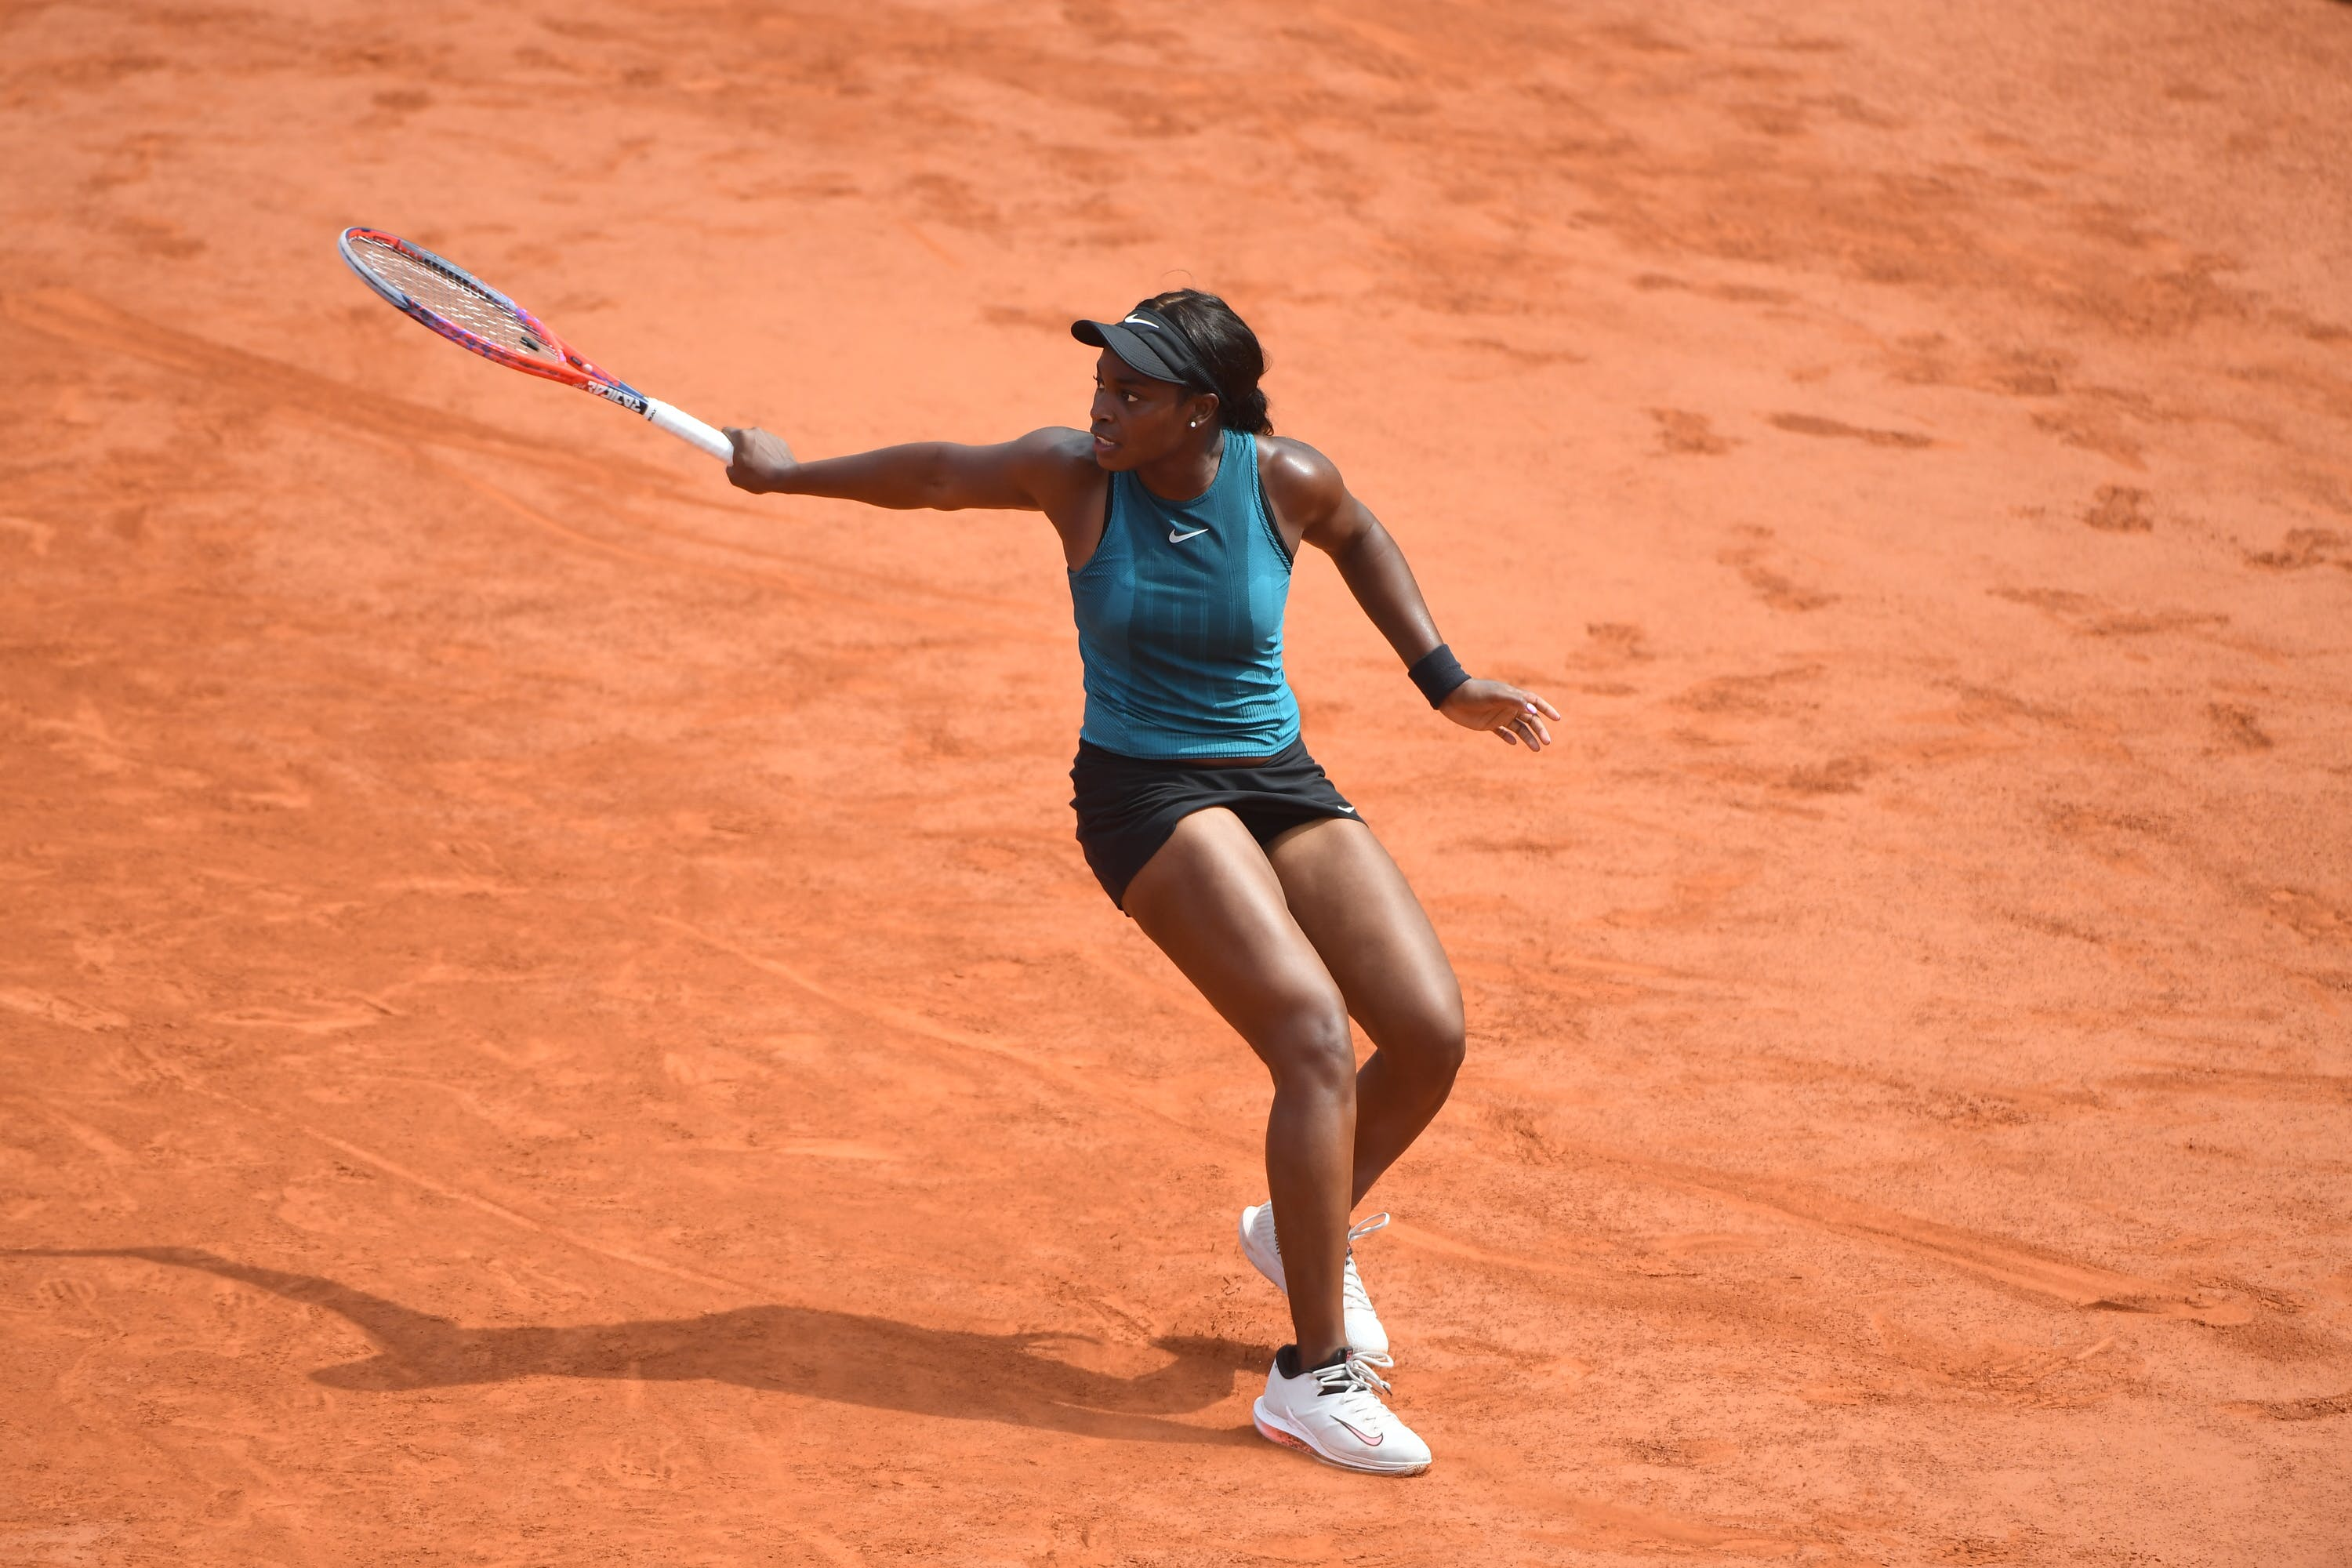 Sloane Stephens hitting a backhand at Roland-Garros 2018